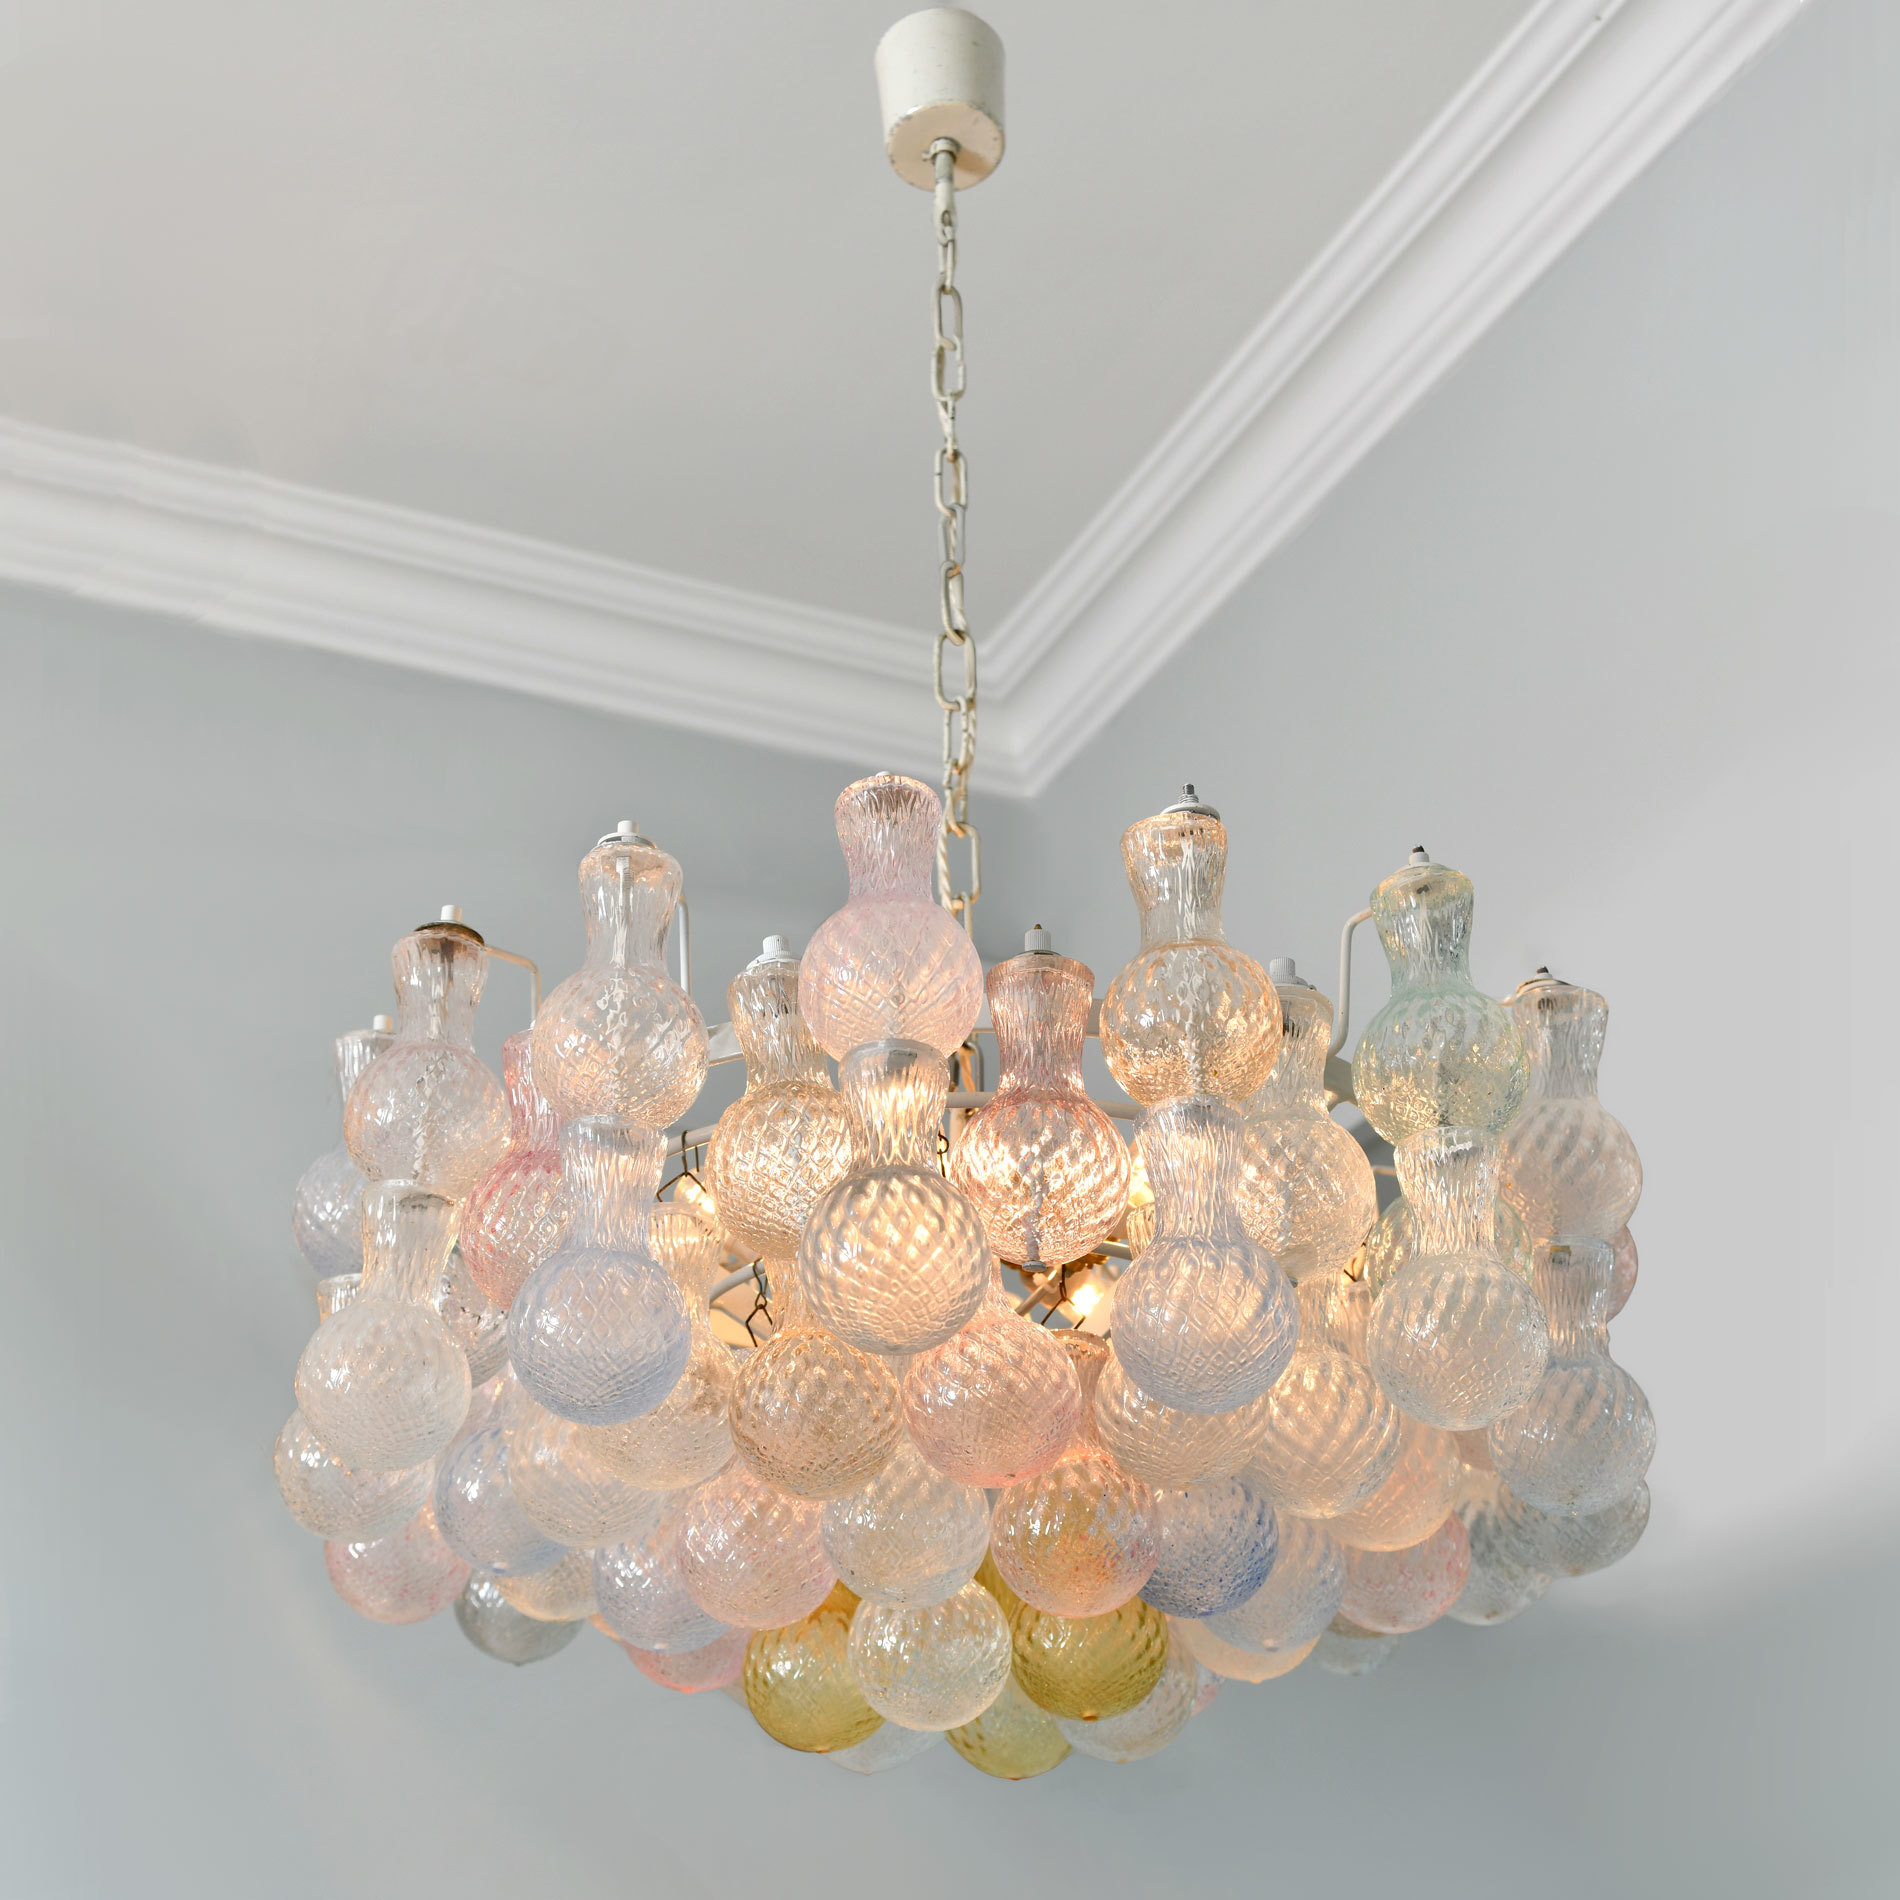 1950S Italian Chandelier By Seguso 01